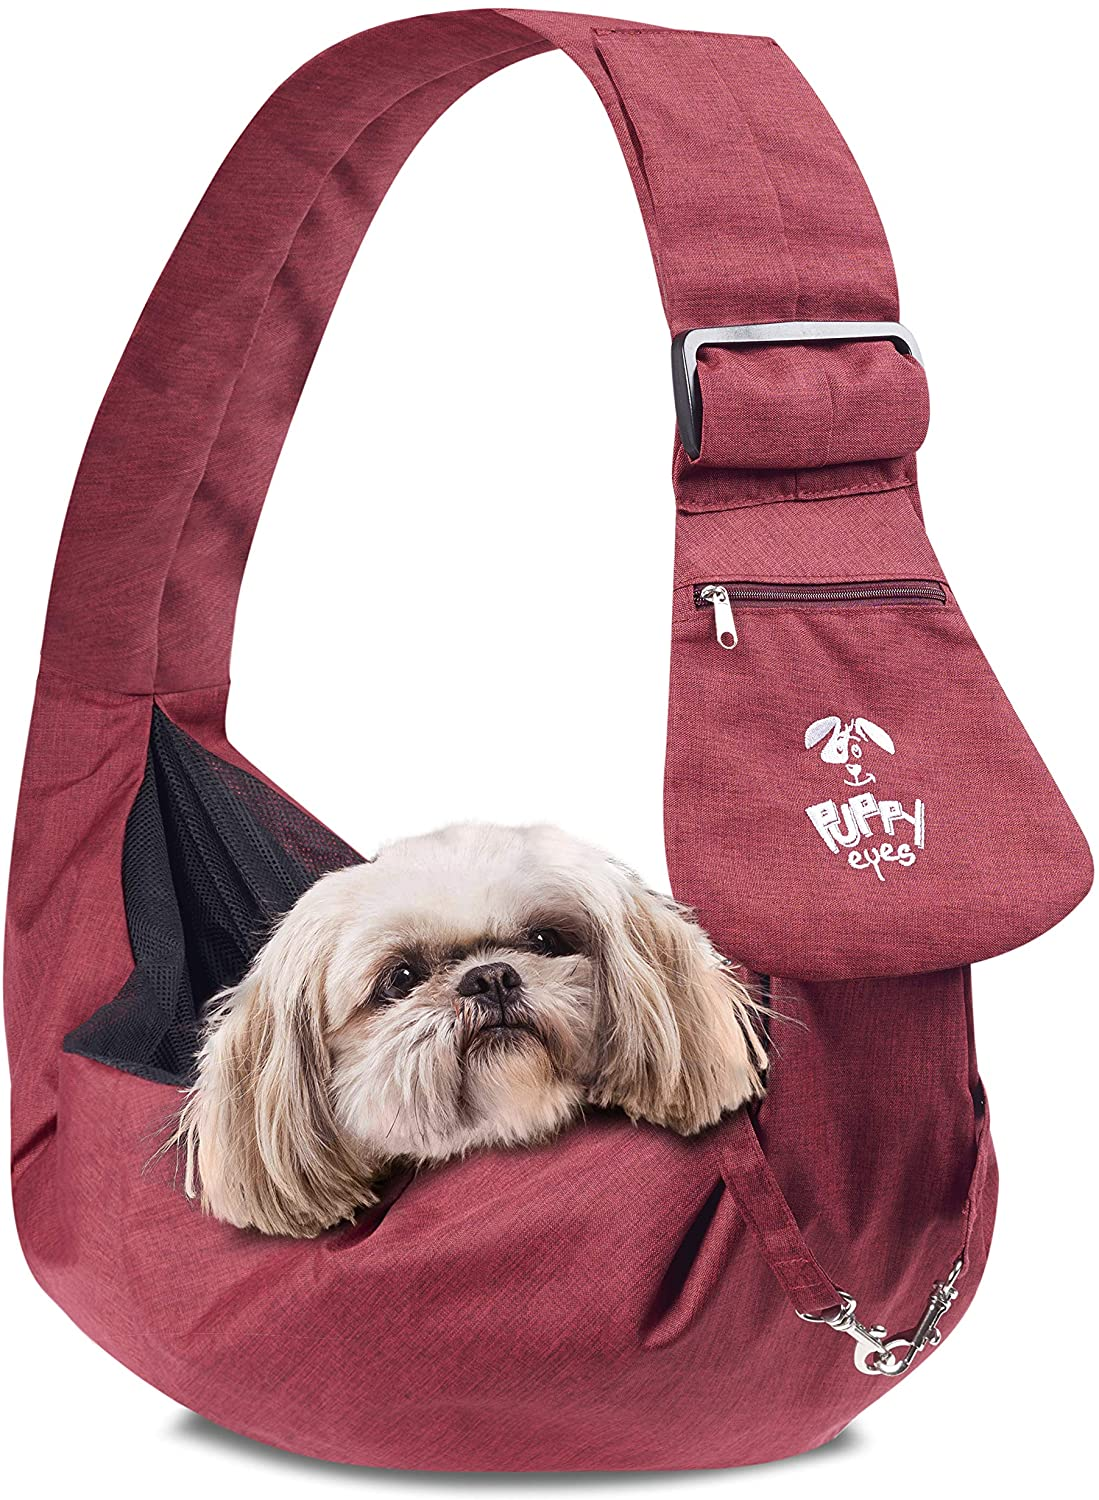 Puppy Eyes Waterproof Pet Carrier Sling Comfortable and Adjustable Dog Sling Ideal for Small and Medium Dogs up to 16 Pounds - Lightweight and Easy-Care Dog Carrier with Safety Mesh and Safety Leash